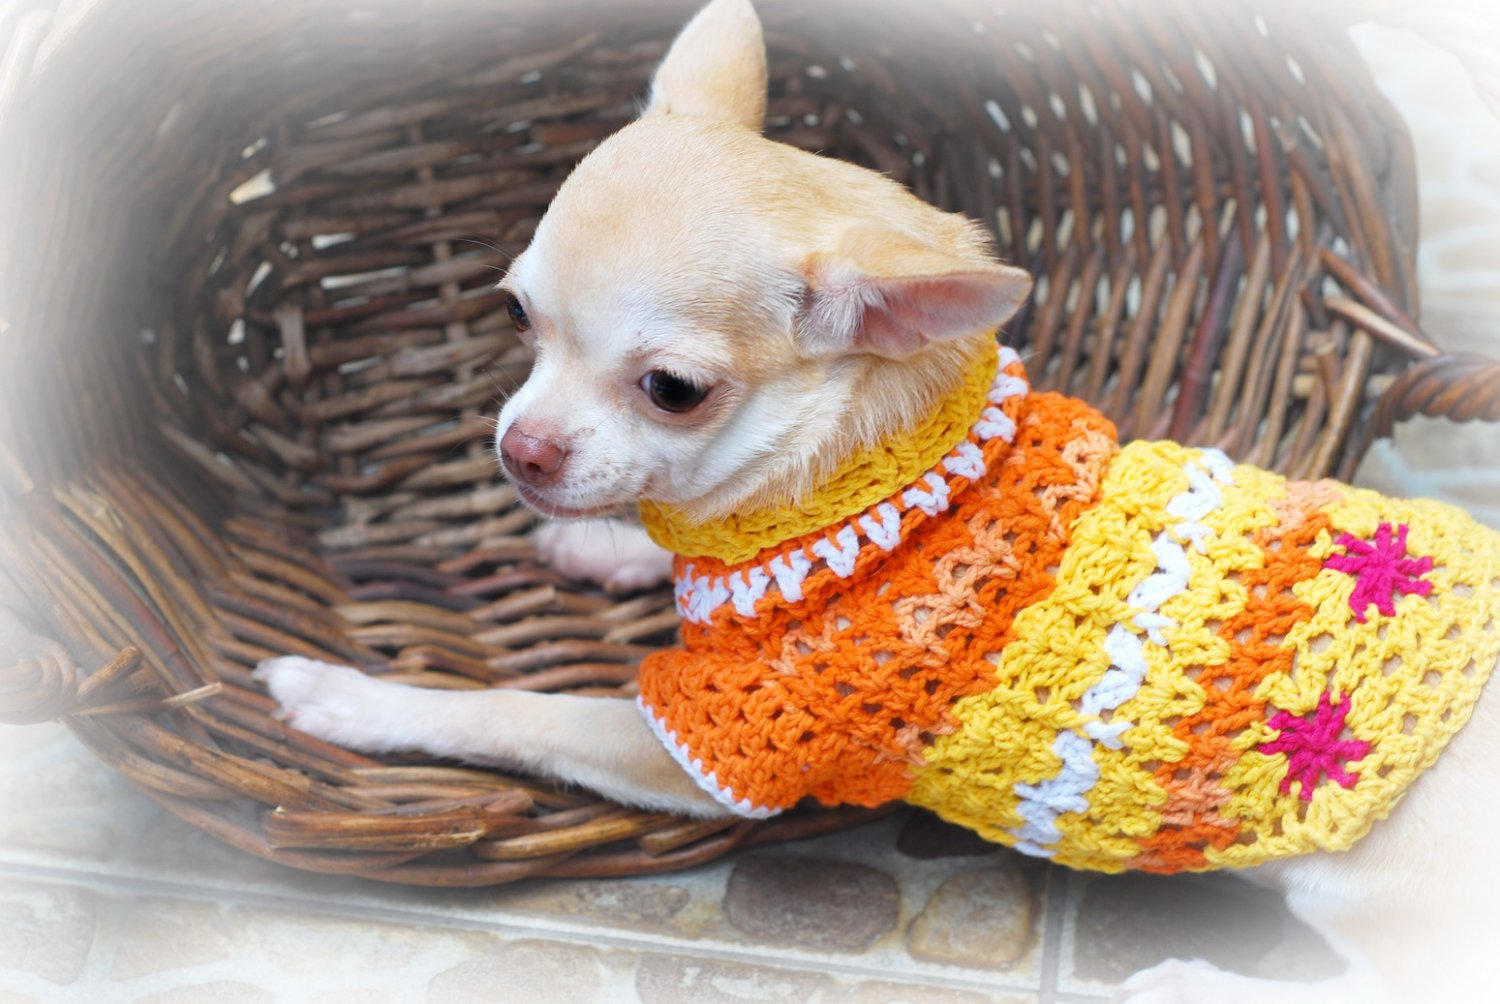 Handmade Hand Crochet Dog Clothes Puppy Sweater Myknitt D811 XS